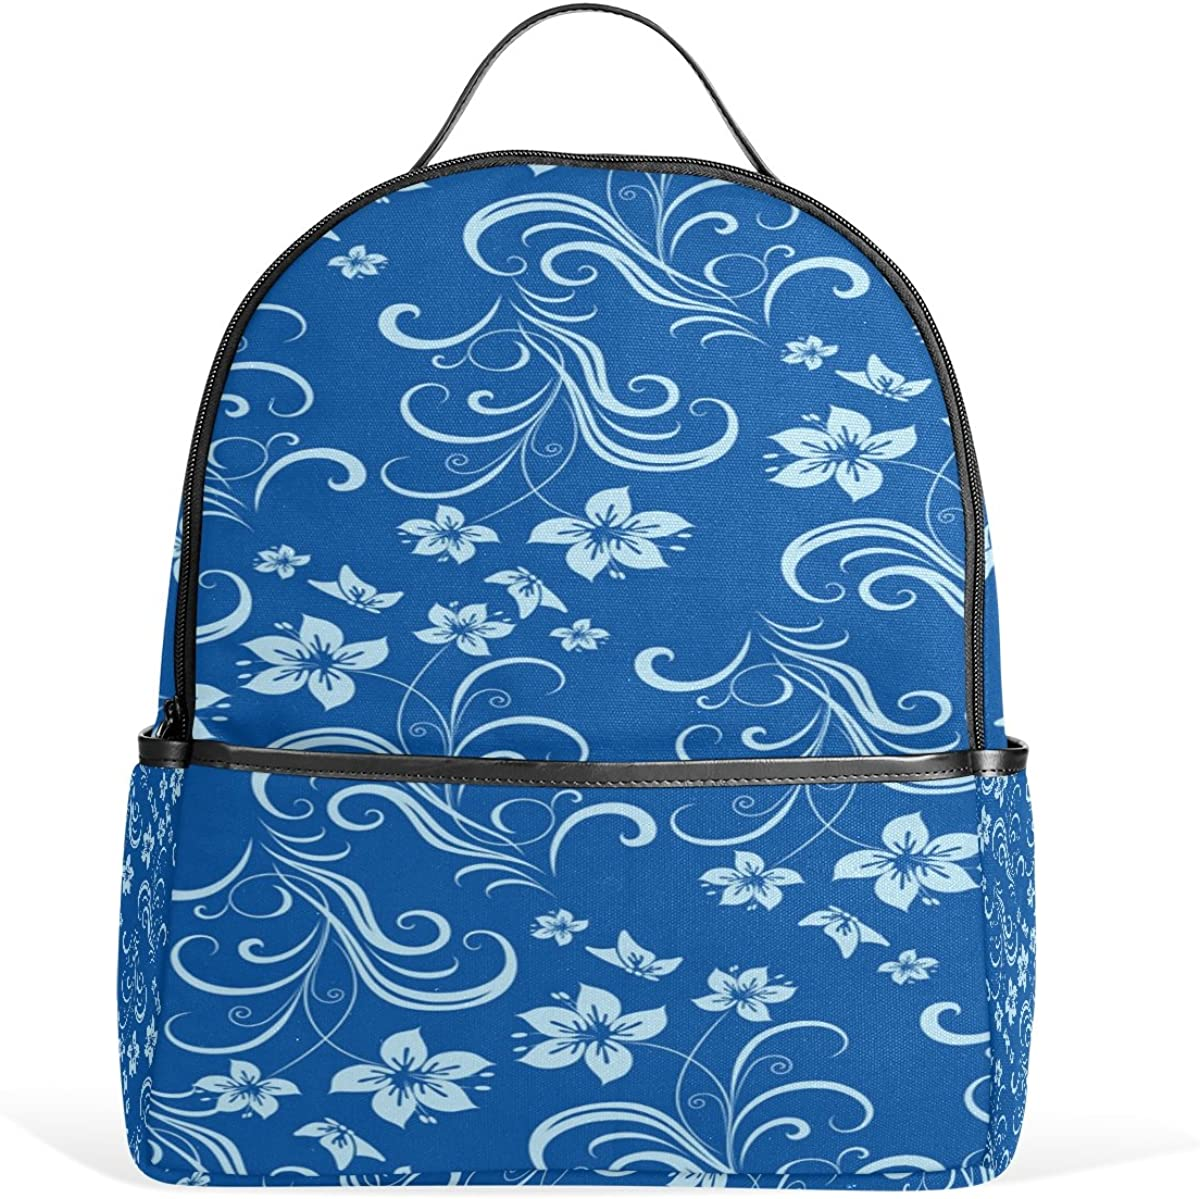 Mr.Weng Blue And White Cane Printed Canvas Backpack For Girl and Children